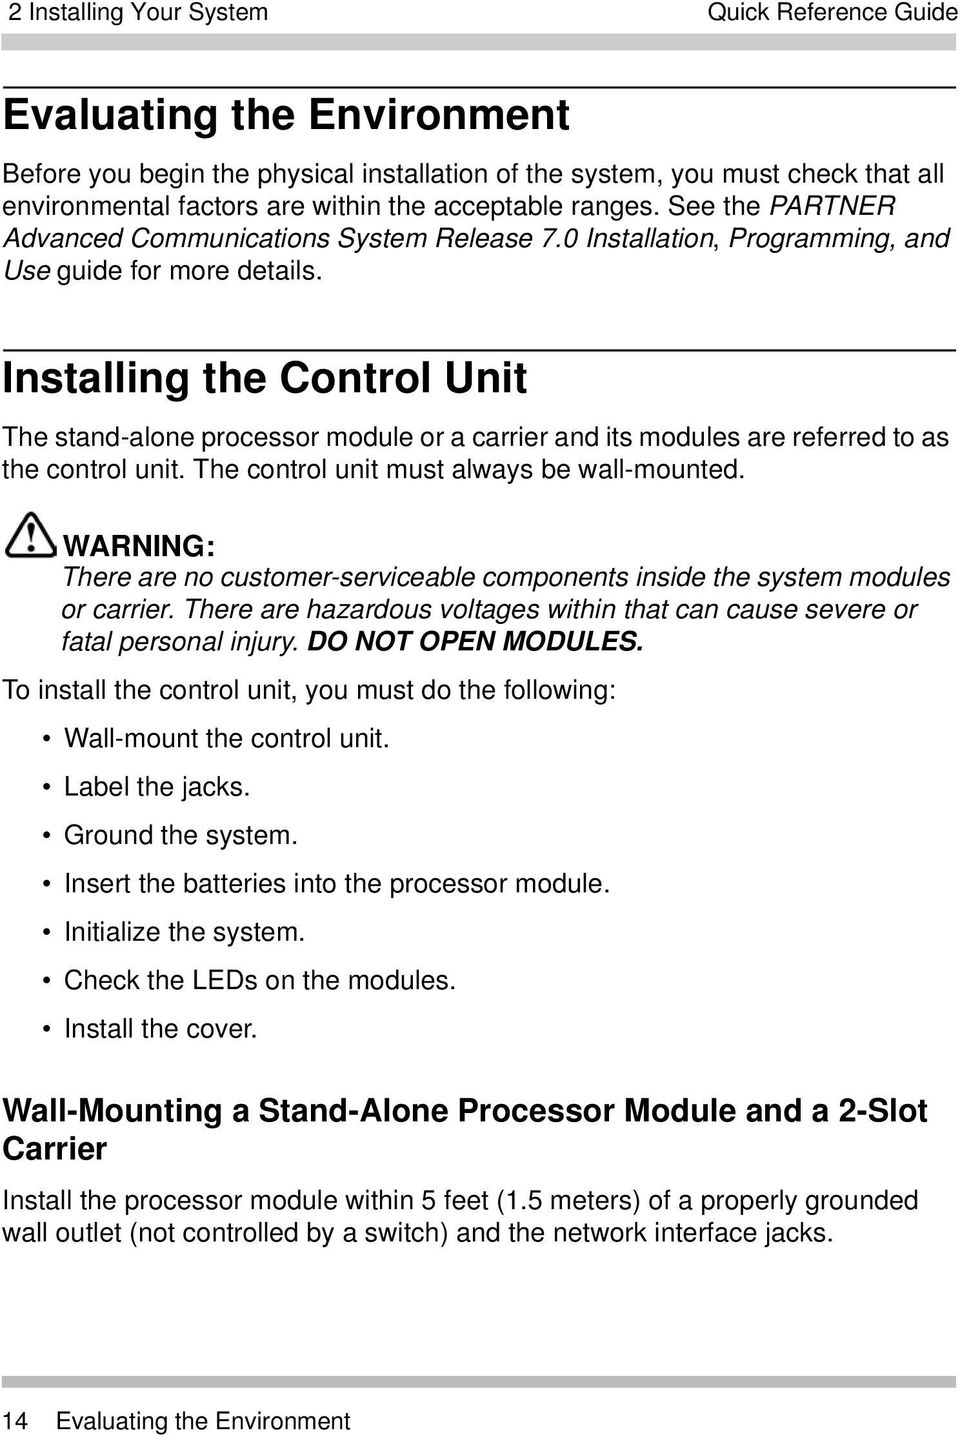 Installing the Control Unit The stand-alone processor module or a carrier and its modules are referred to as the control unit. The control unit must always be wall-mounted.